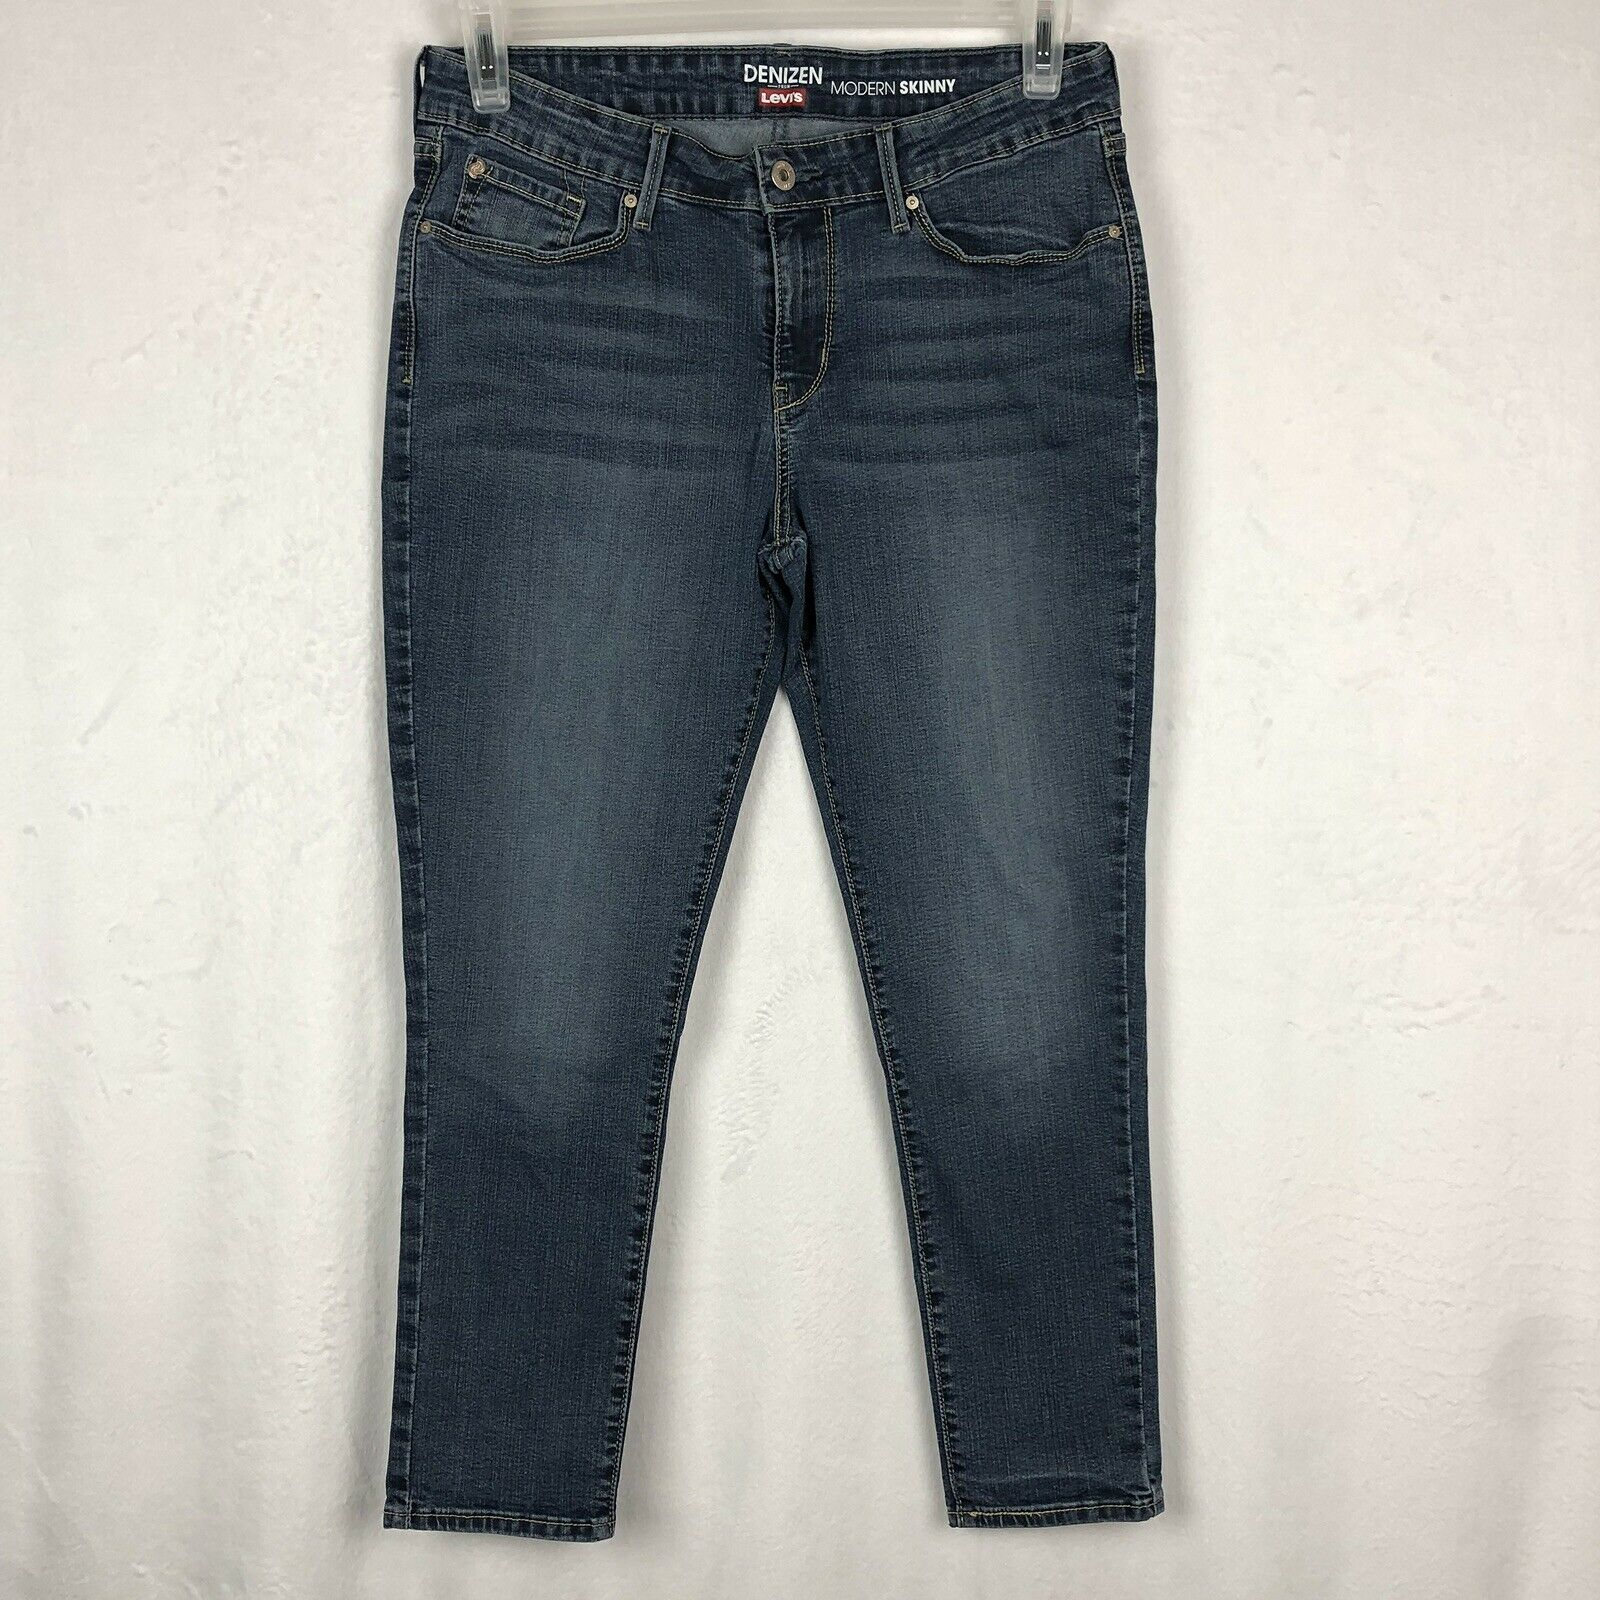 ce112f6d Denizen by Levi's Modern SKINNY Size 12 Short Blue Jeans for sale ...